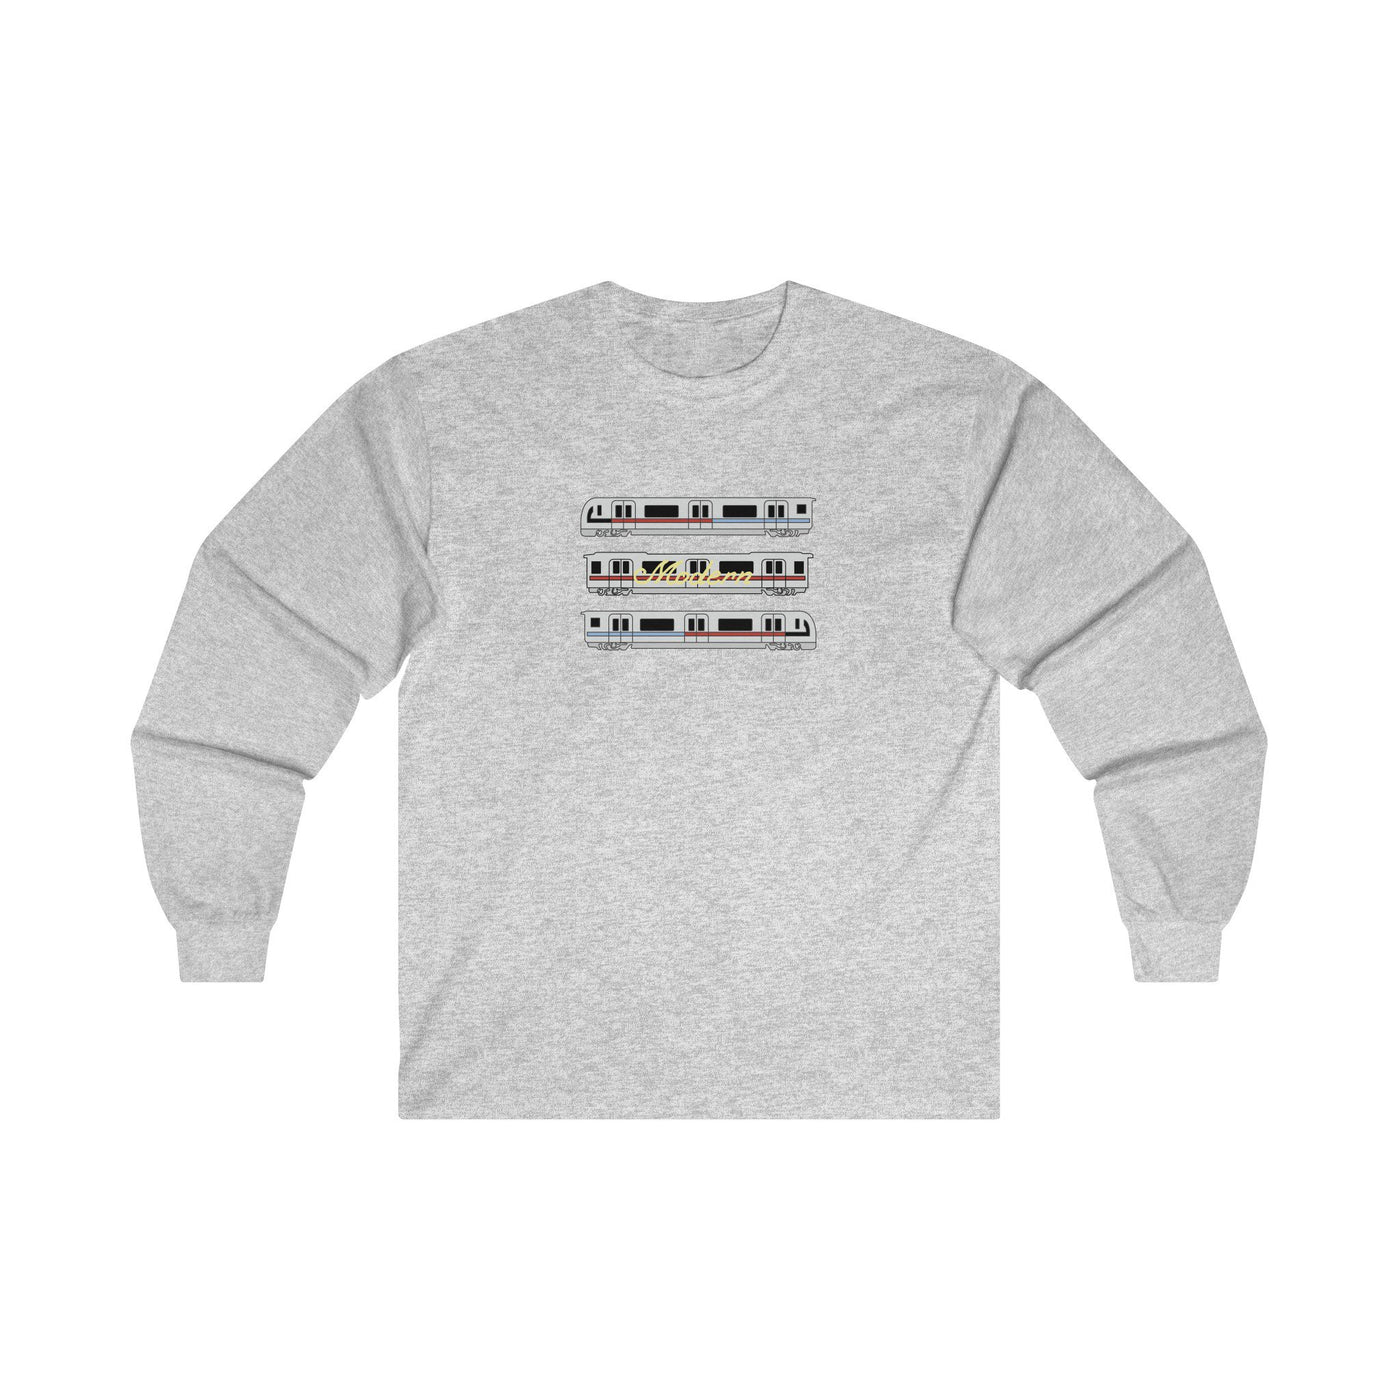 Long-sleeve - Planes & Trains Longsleeve - Ash Grey